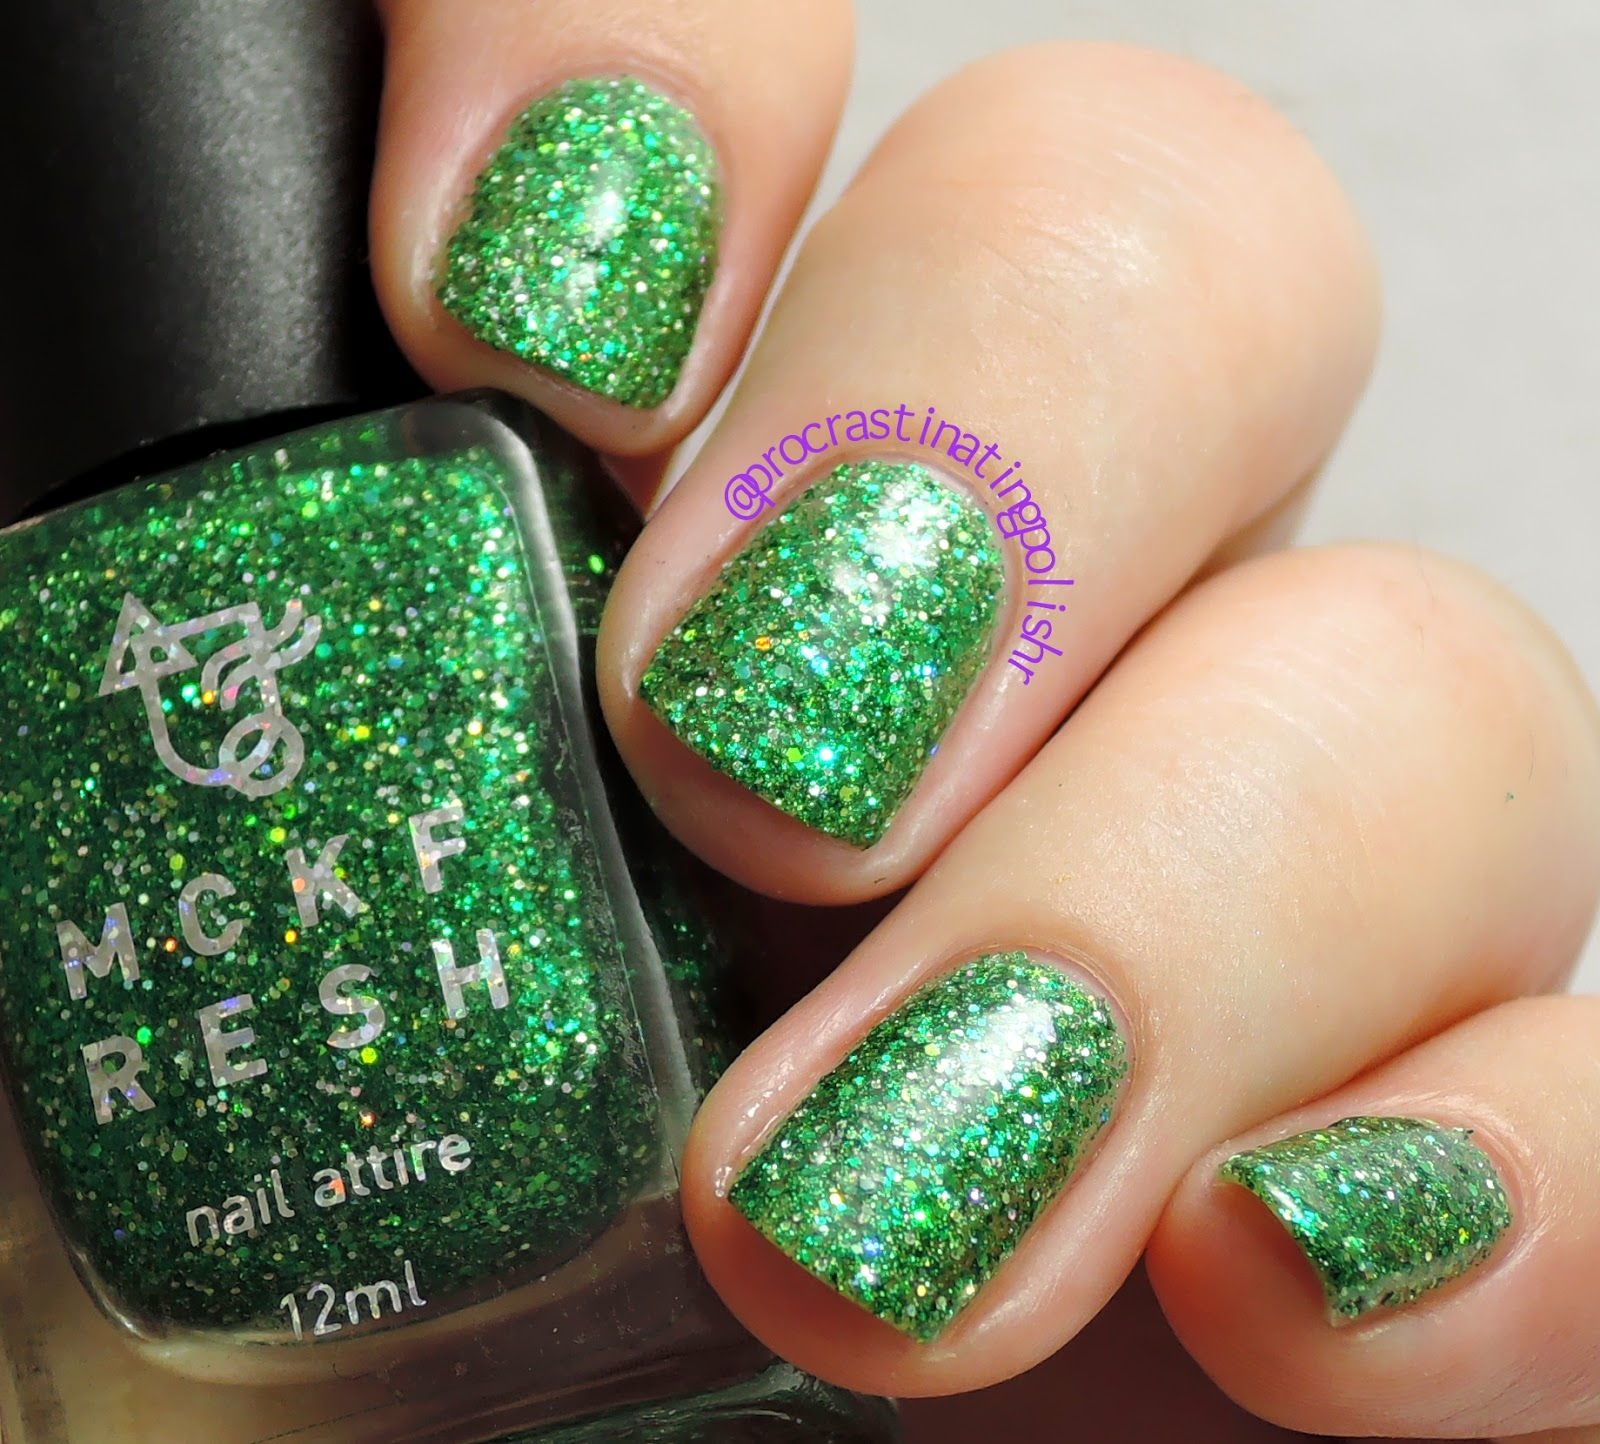 Mckfresh Nail Attire - Mother Malachite